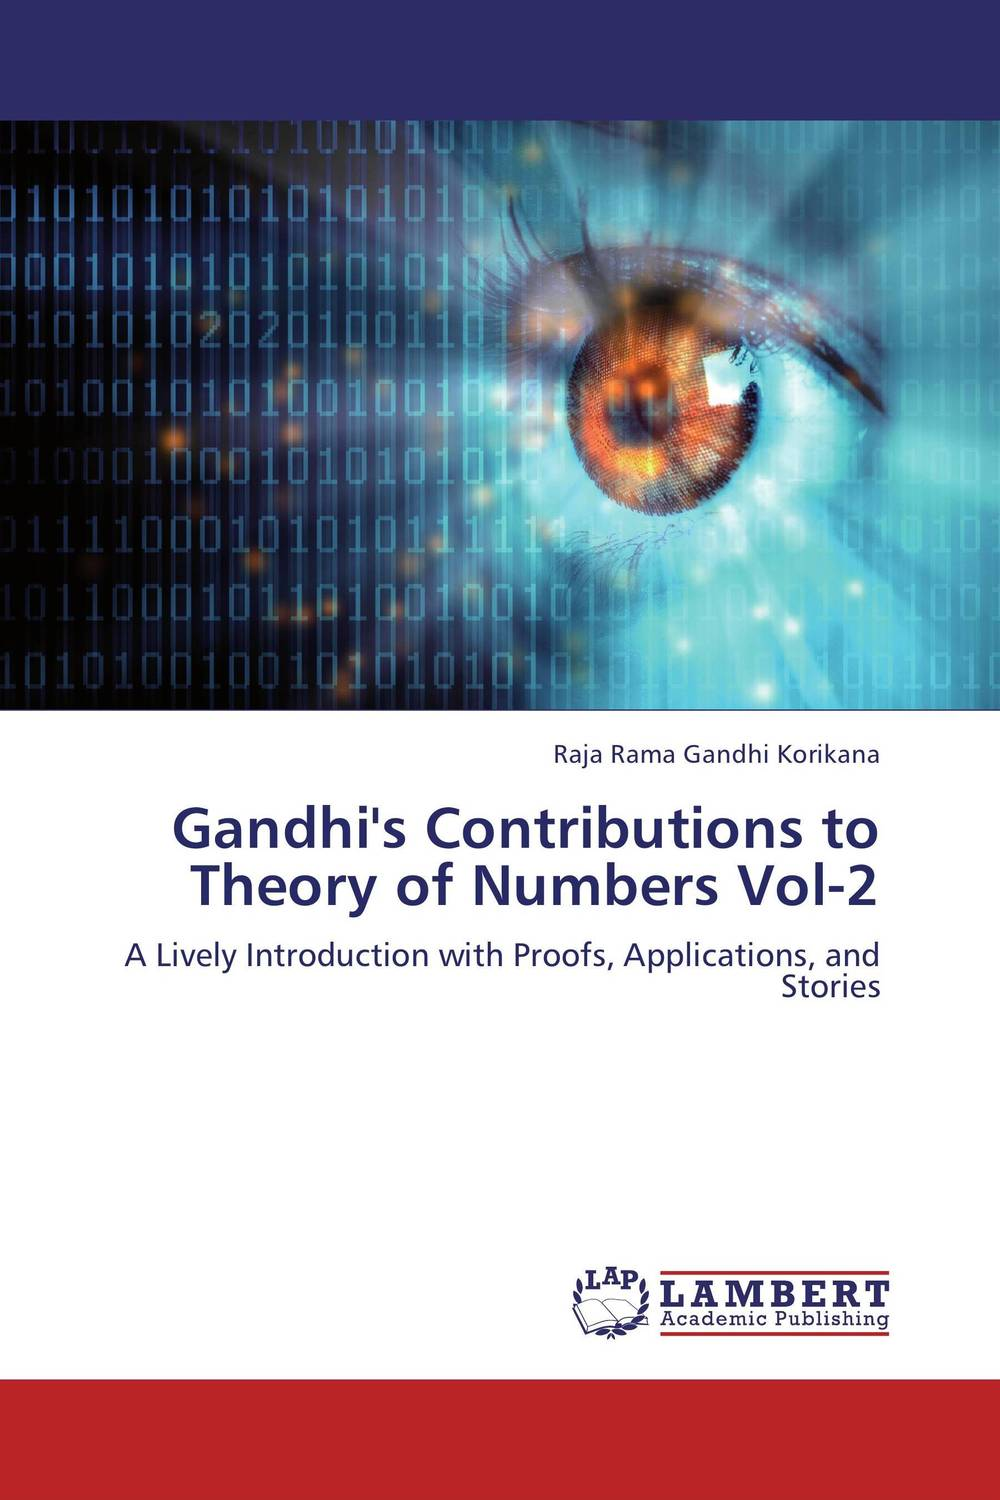 Gandhi's Contributions to Theory of Numbers Vol-2